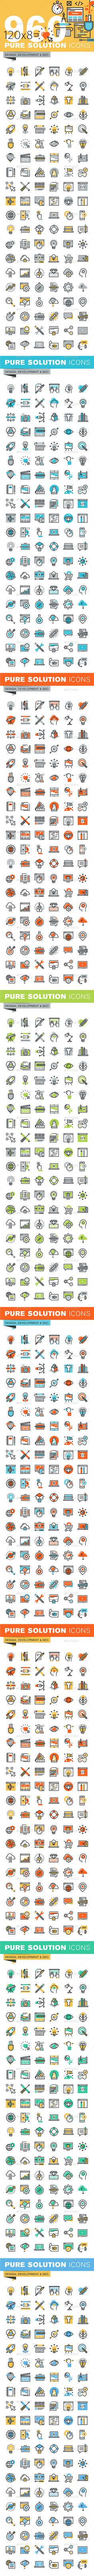 Buy Set of Thin Line Flat Design Icons of Design, Development and SEO by PureSolution on GraphicRiver. Set of modern thin line icons of graphic design, website and app design and development, seo, art and creative proces. Web Design, Flat Design Icons, Line Design, Icon Design, Graphic Design, Flat Icons, Creative Design, Icon Collection, Flat Illustration